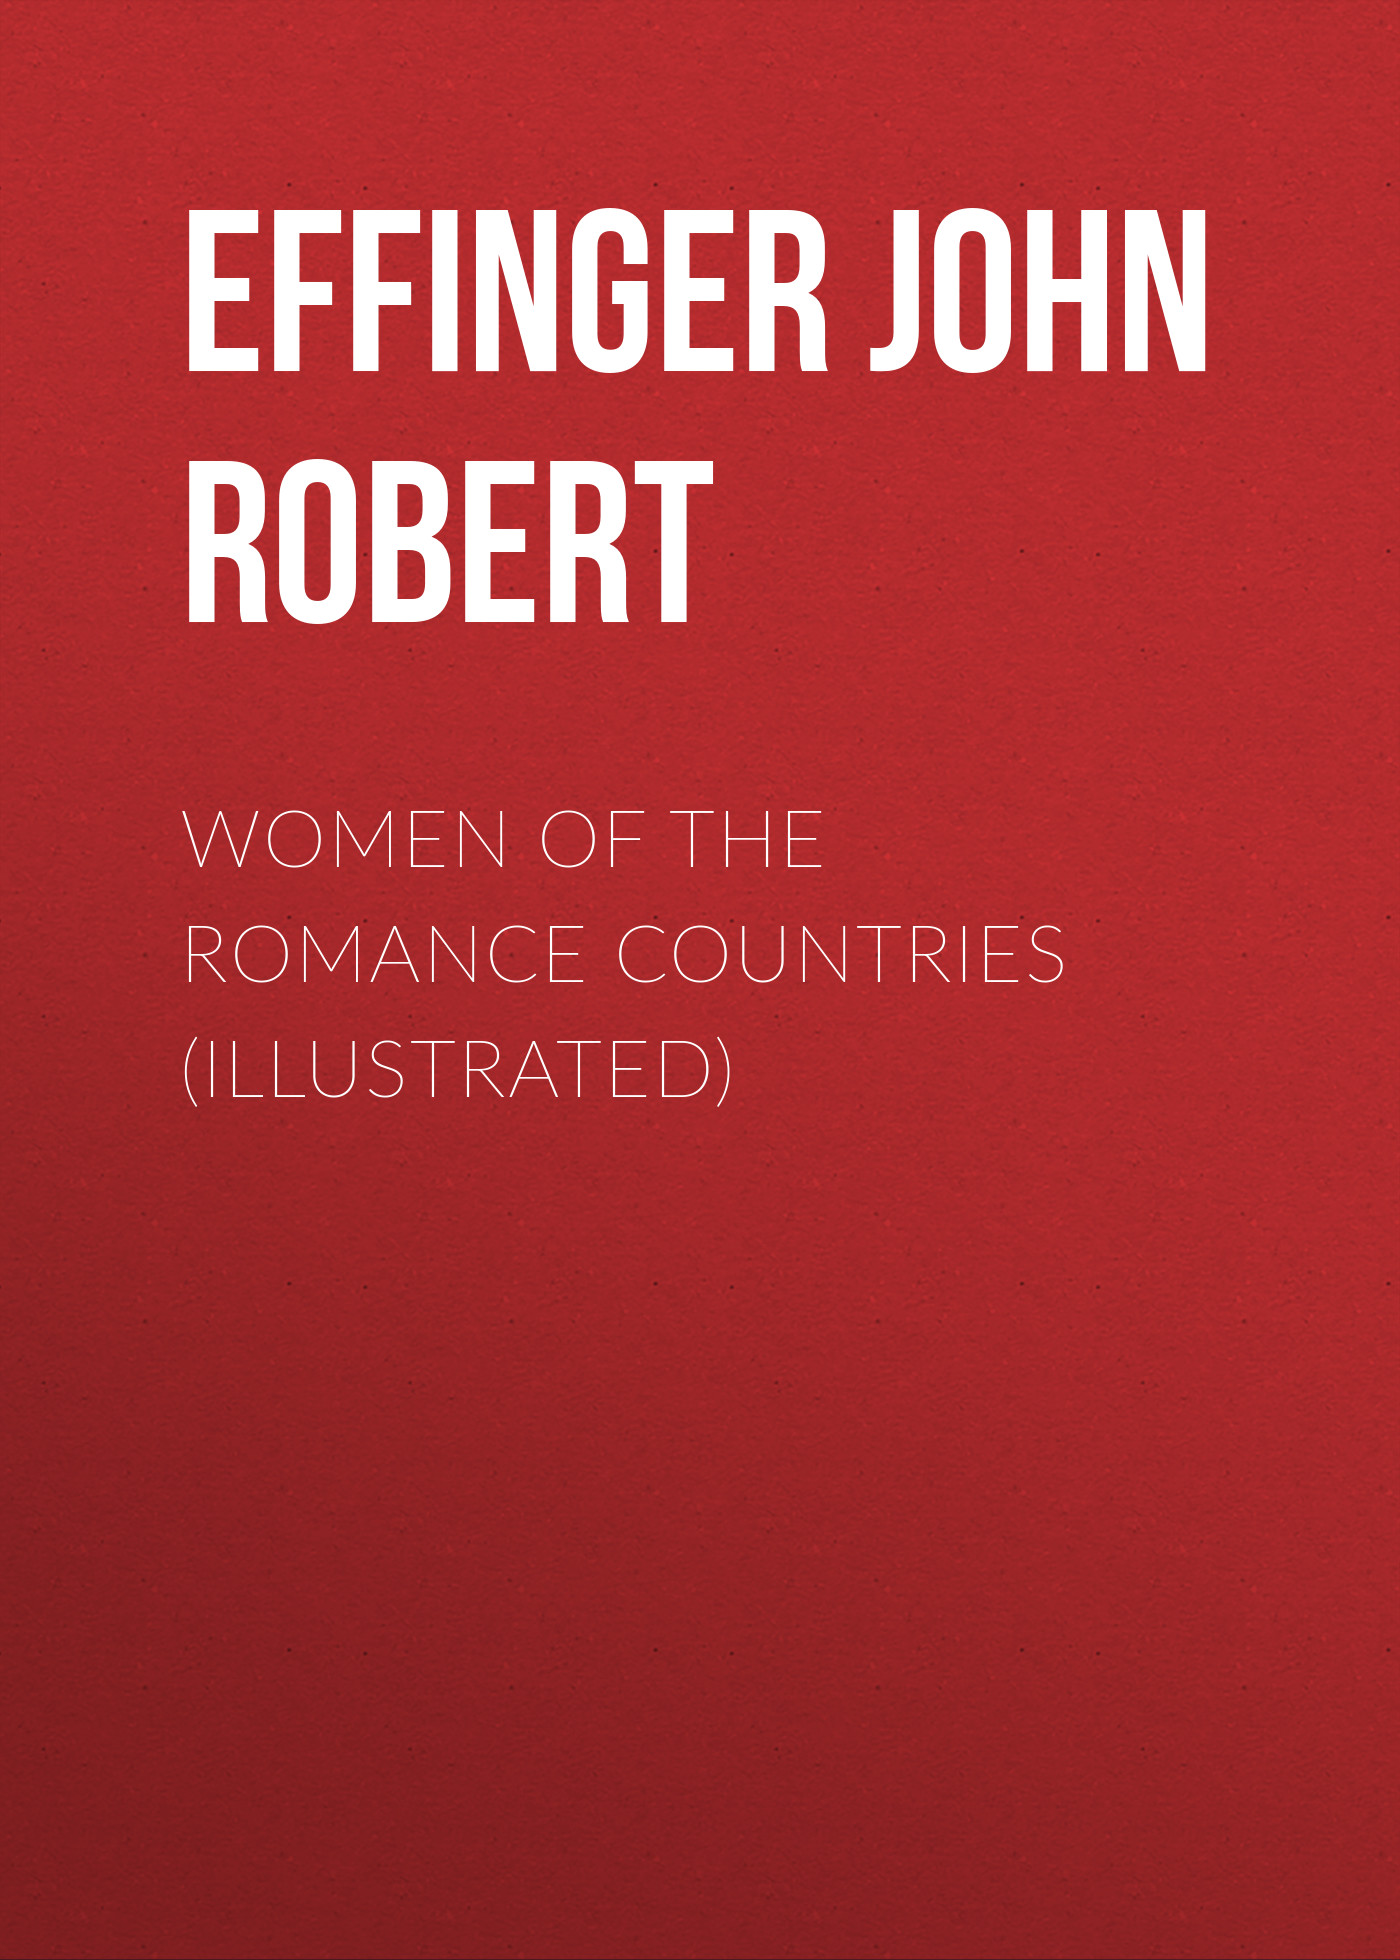 Фото - Effinger John Robert Women of the Romance Countries (Illustrated) r h robert hindry mason norfolk photographically illustrated